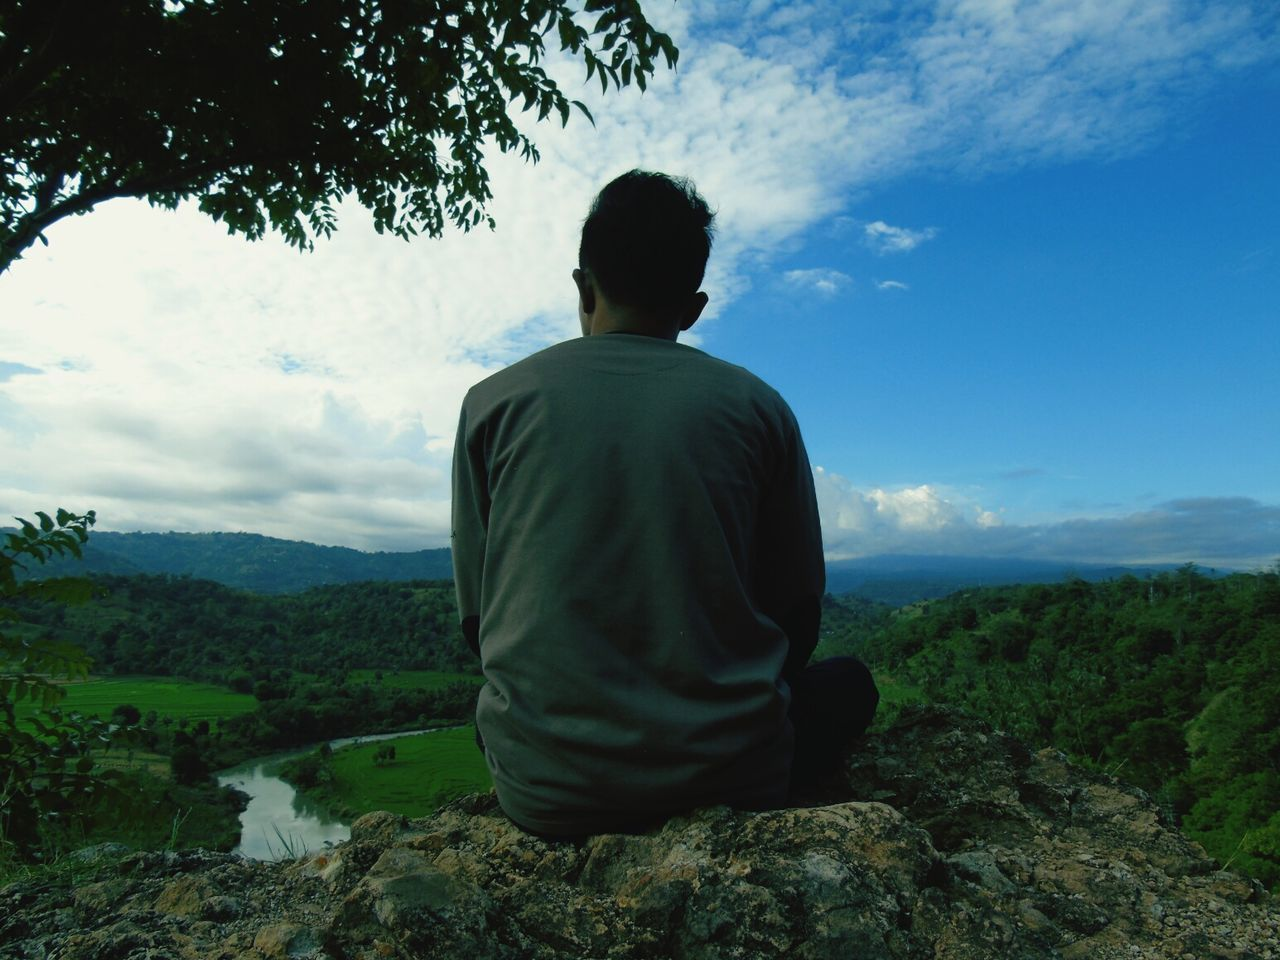 rear view, sky, real people, one person, men, nature, tree, mountain, landscape, tranquil scene, cloud - sky, outdoors, standing, day, sitting, beauty in nature, scenics, one man only, people